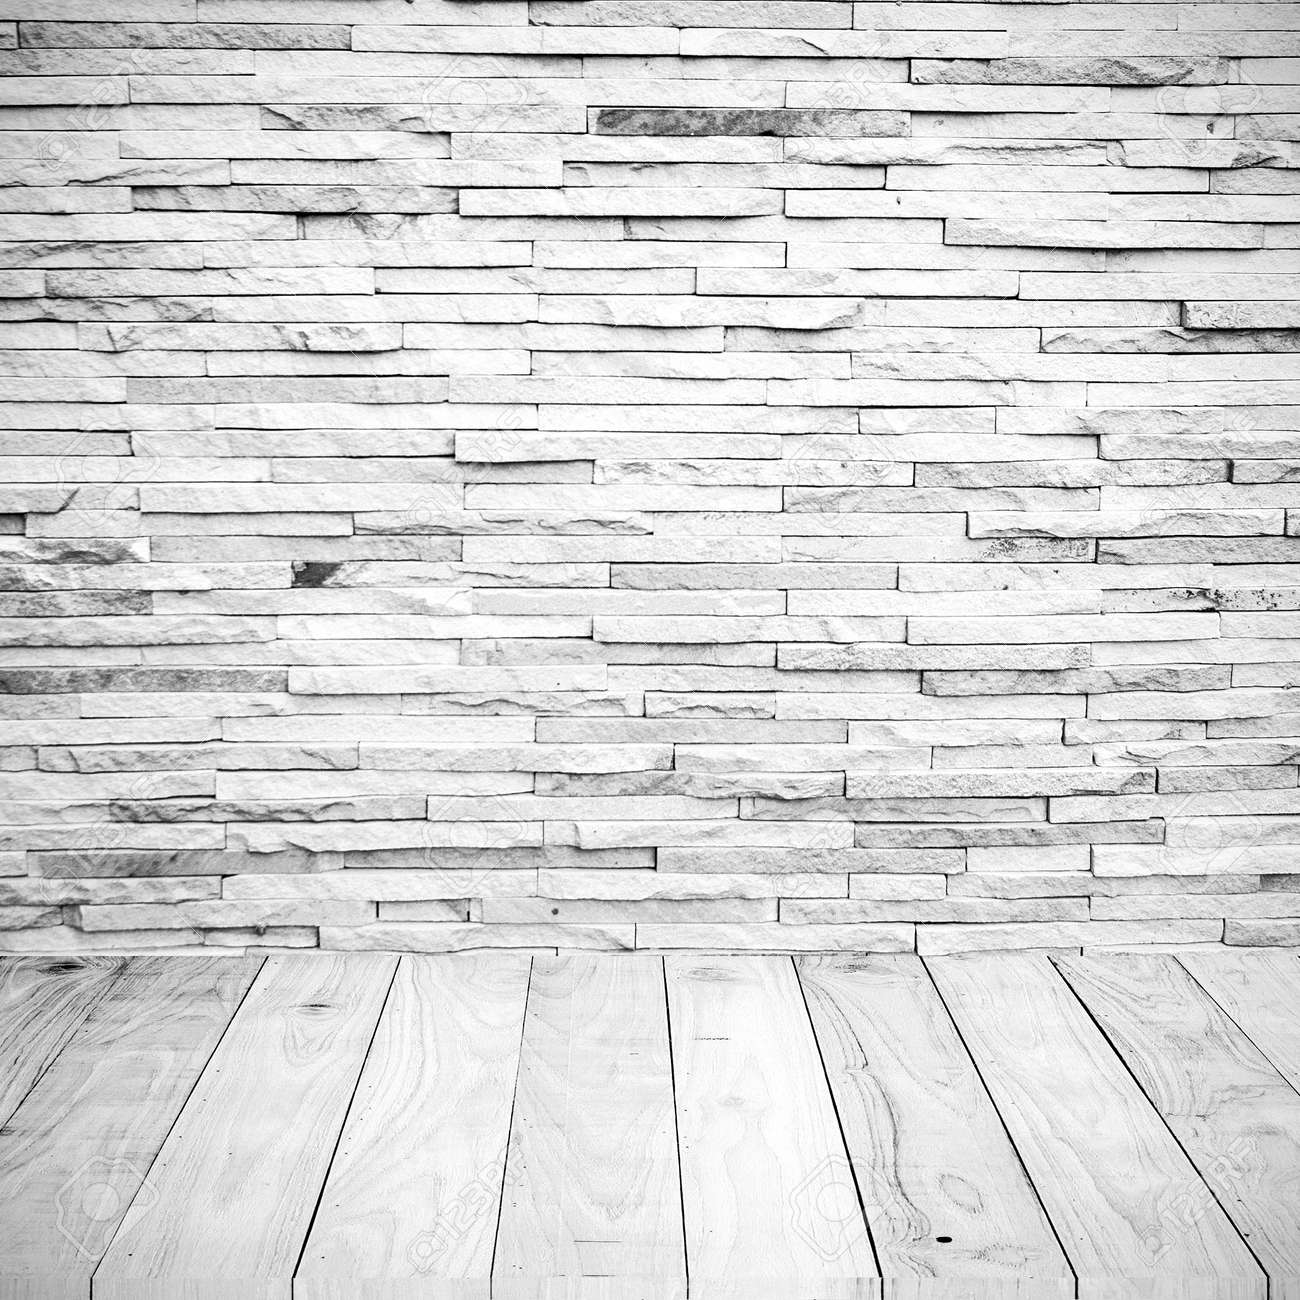 white tile brick wall with wooden floor background texture stock photo white wood floor